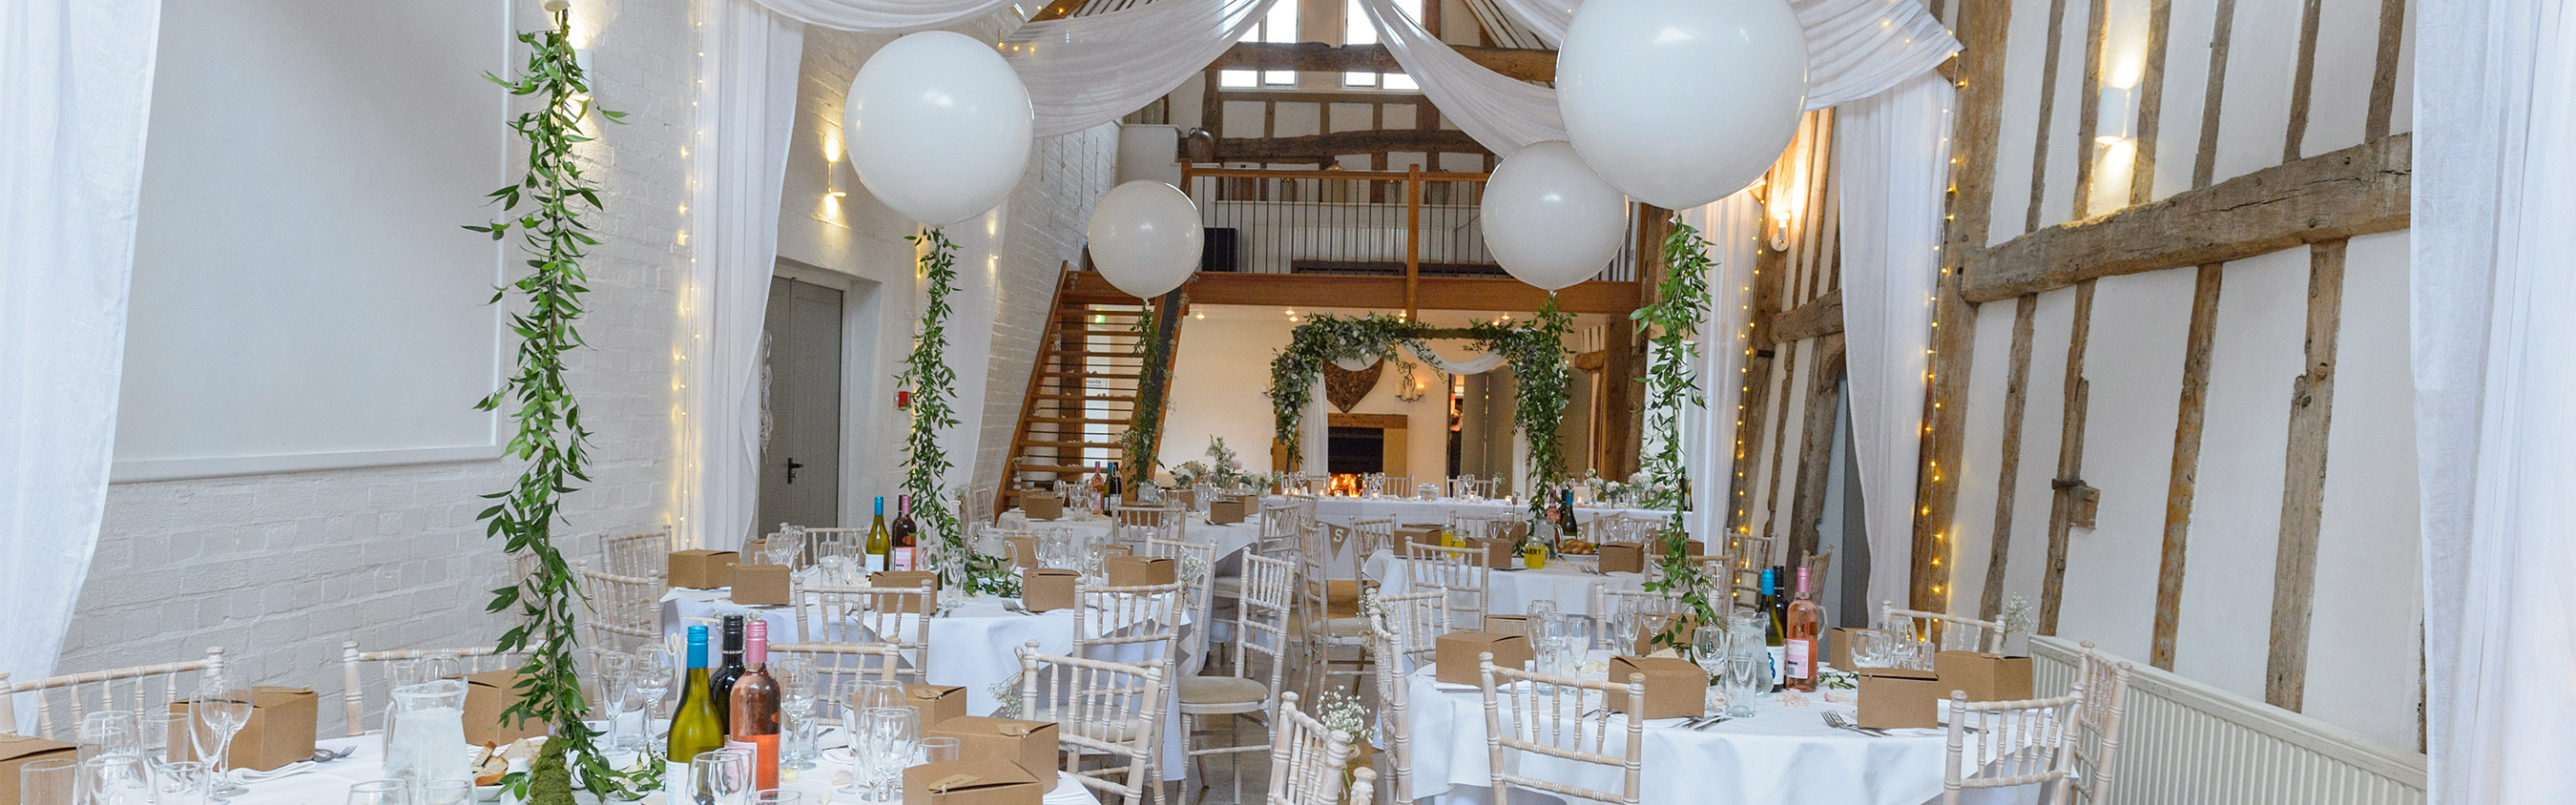 Wedding Breakfast At Dove Barn Wedding Venue decorated in White